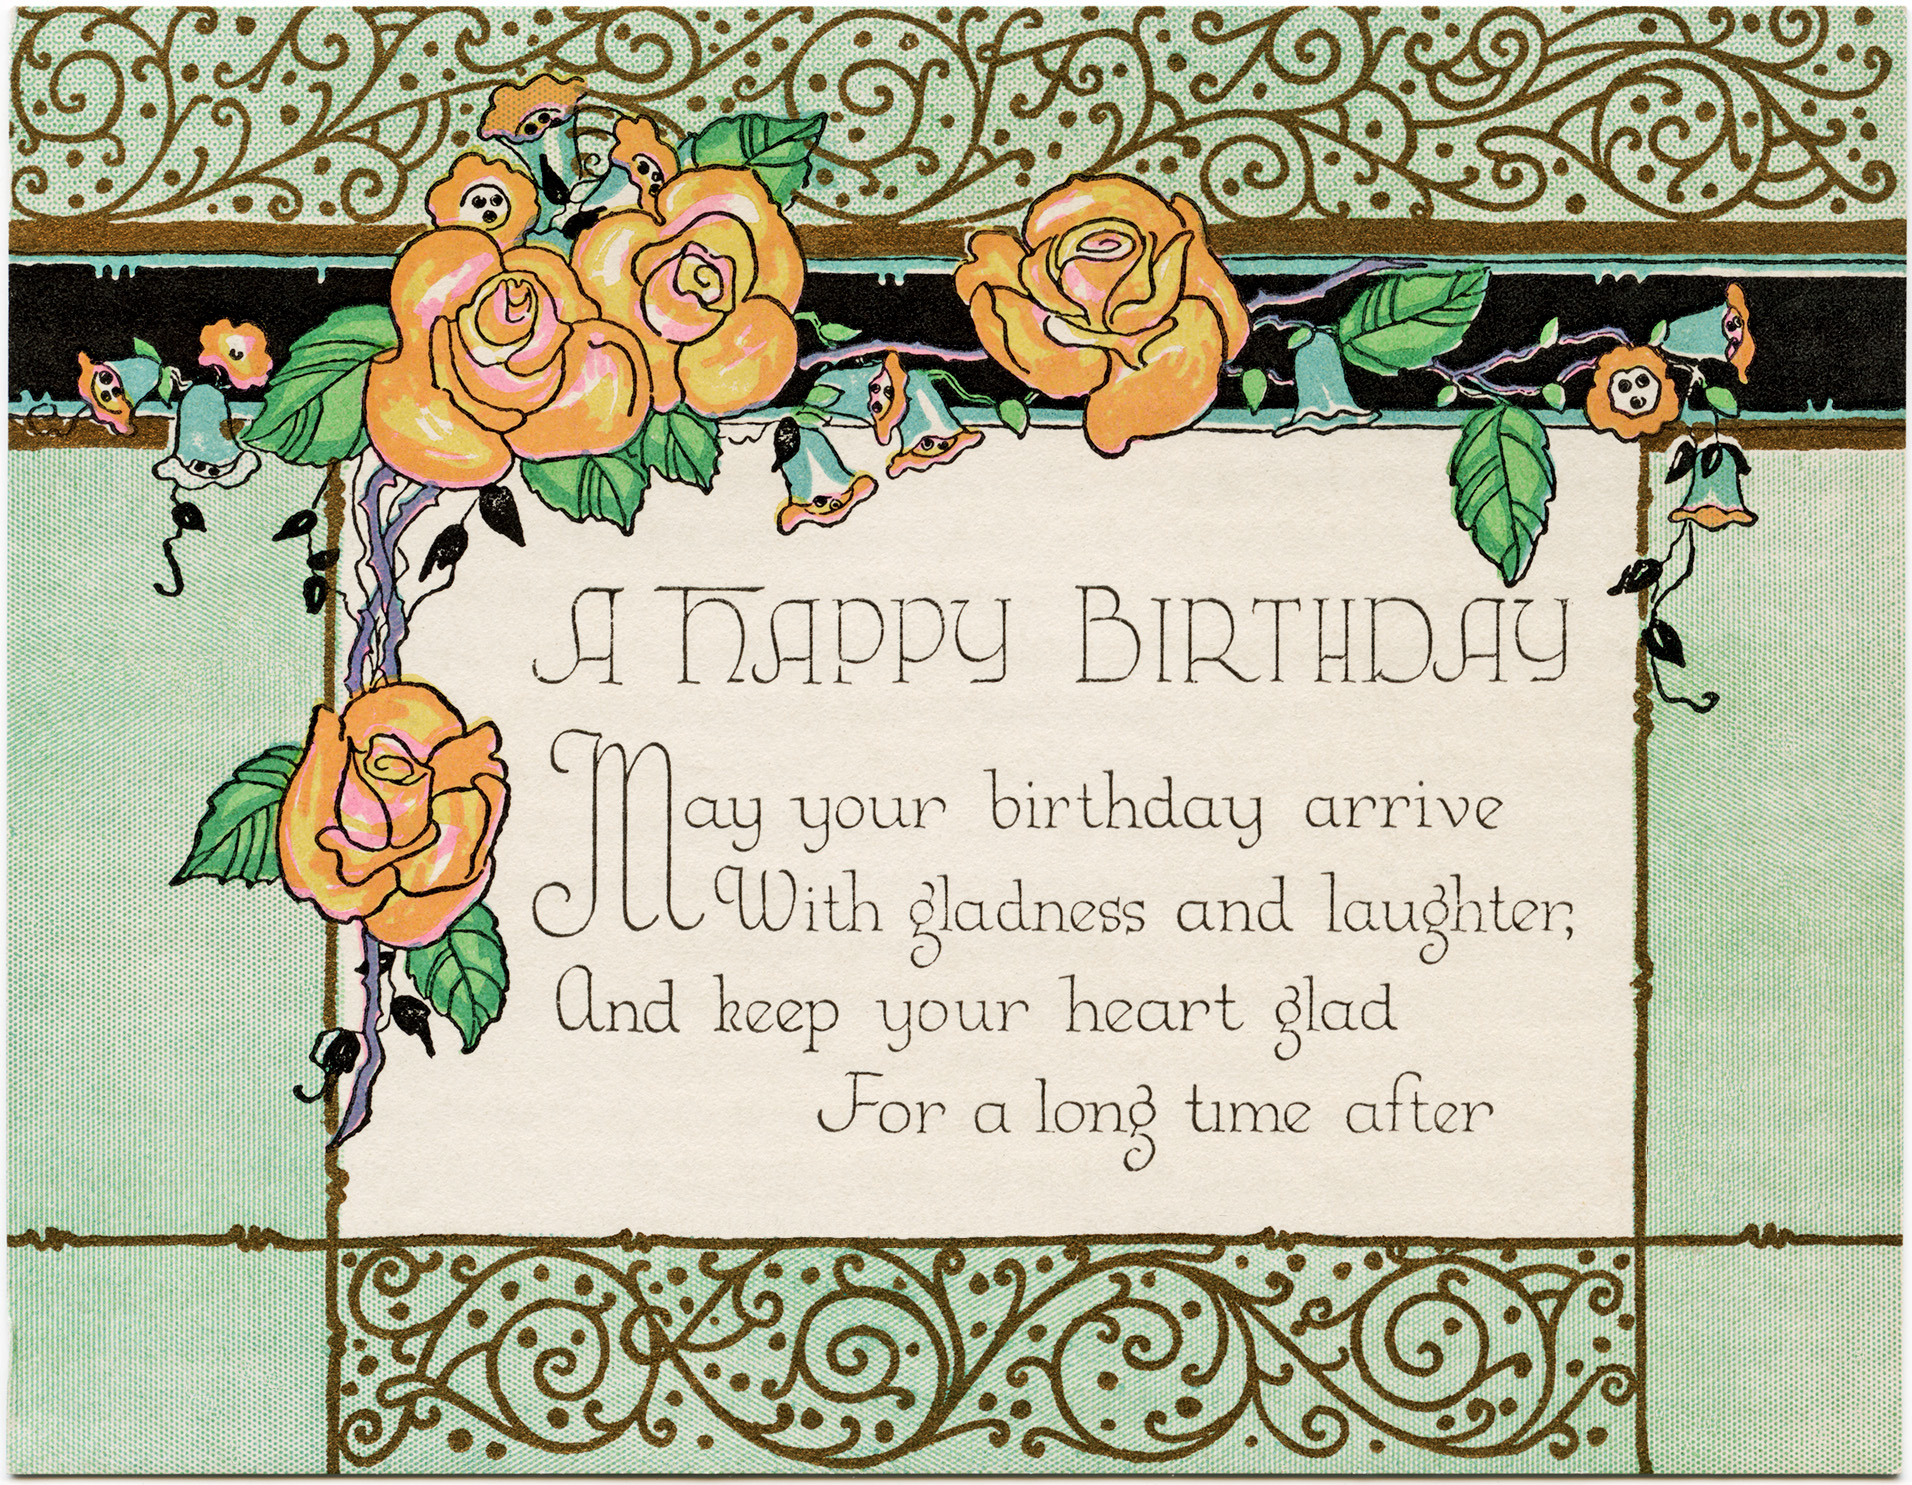 Vintage time card clipart graphic royalty free stock Art Deco Birthday Card ~ Free Download - Old Design Shop Blog graphic royalty free stock